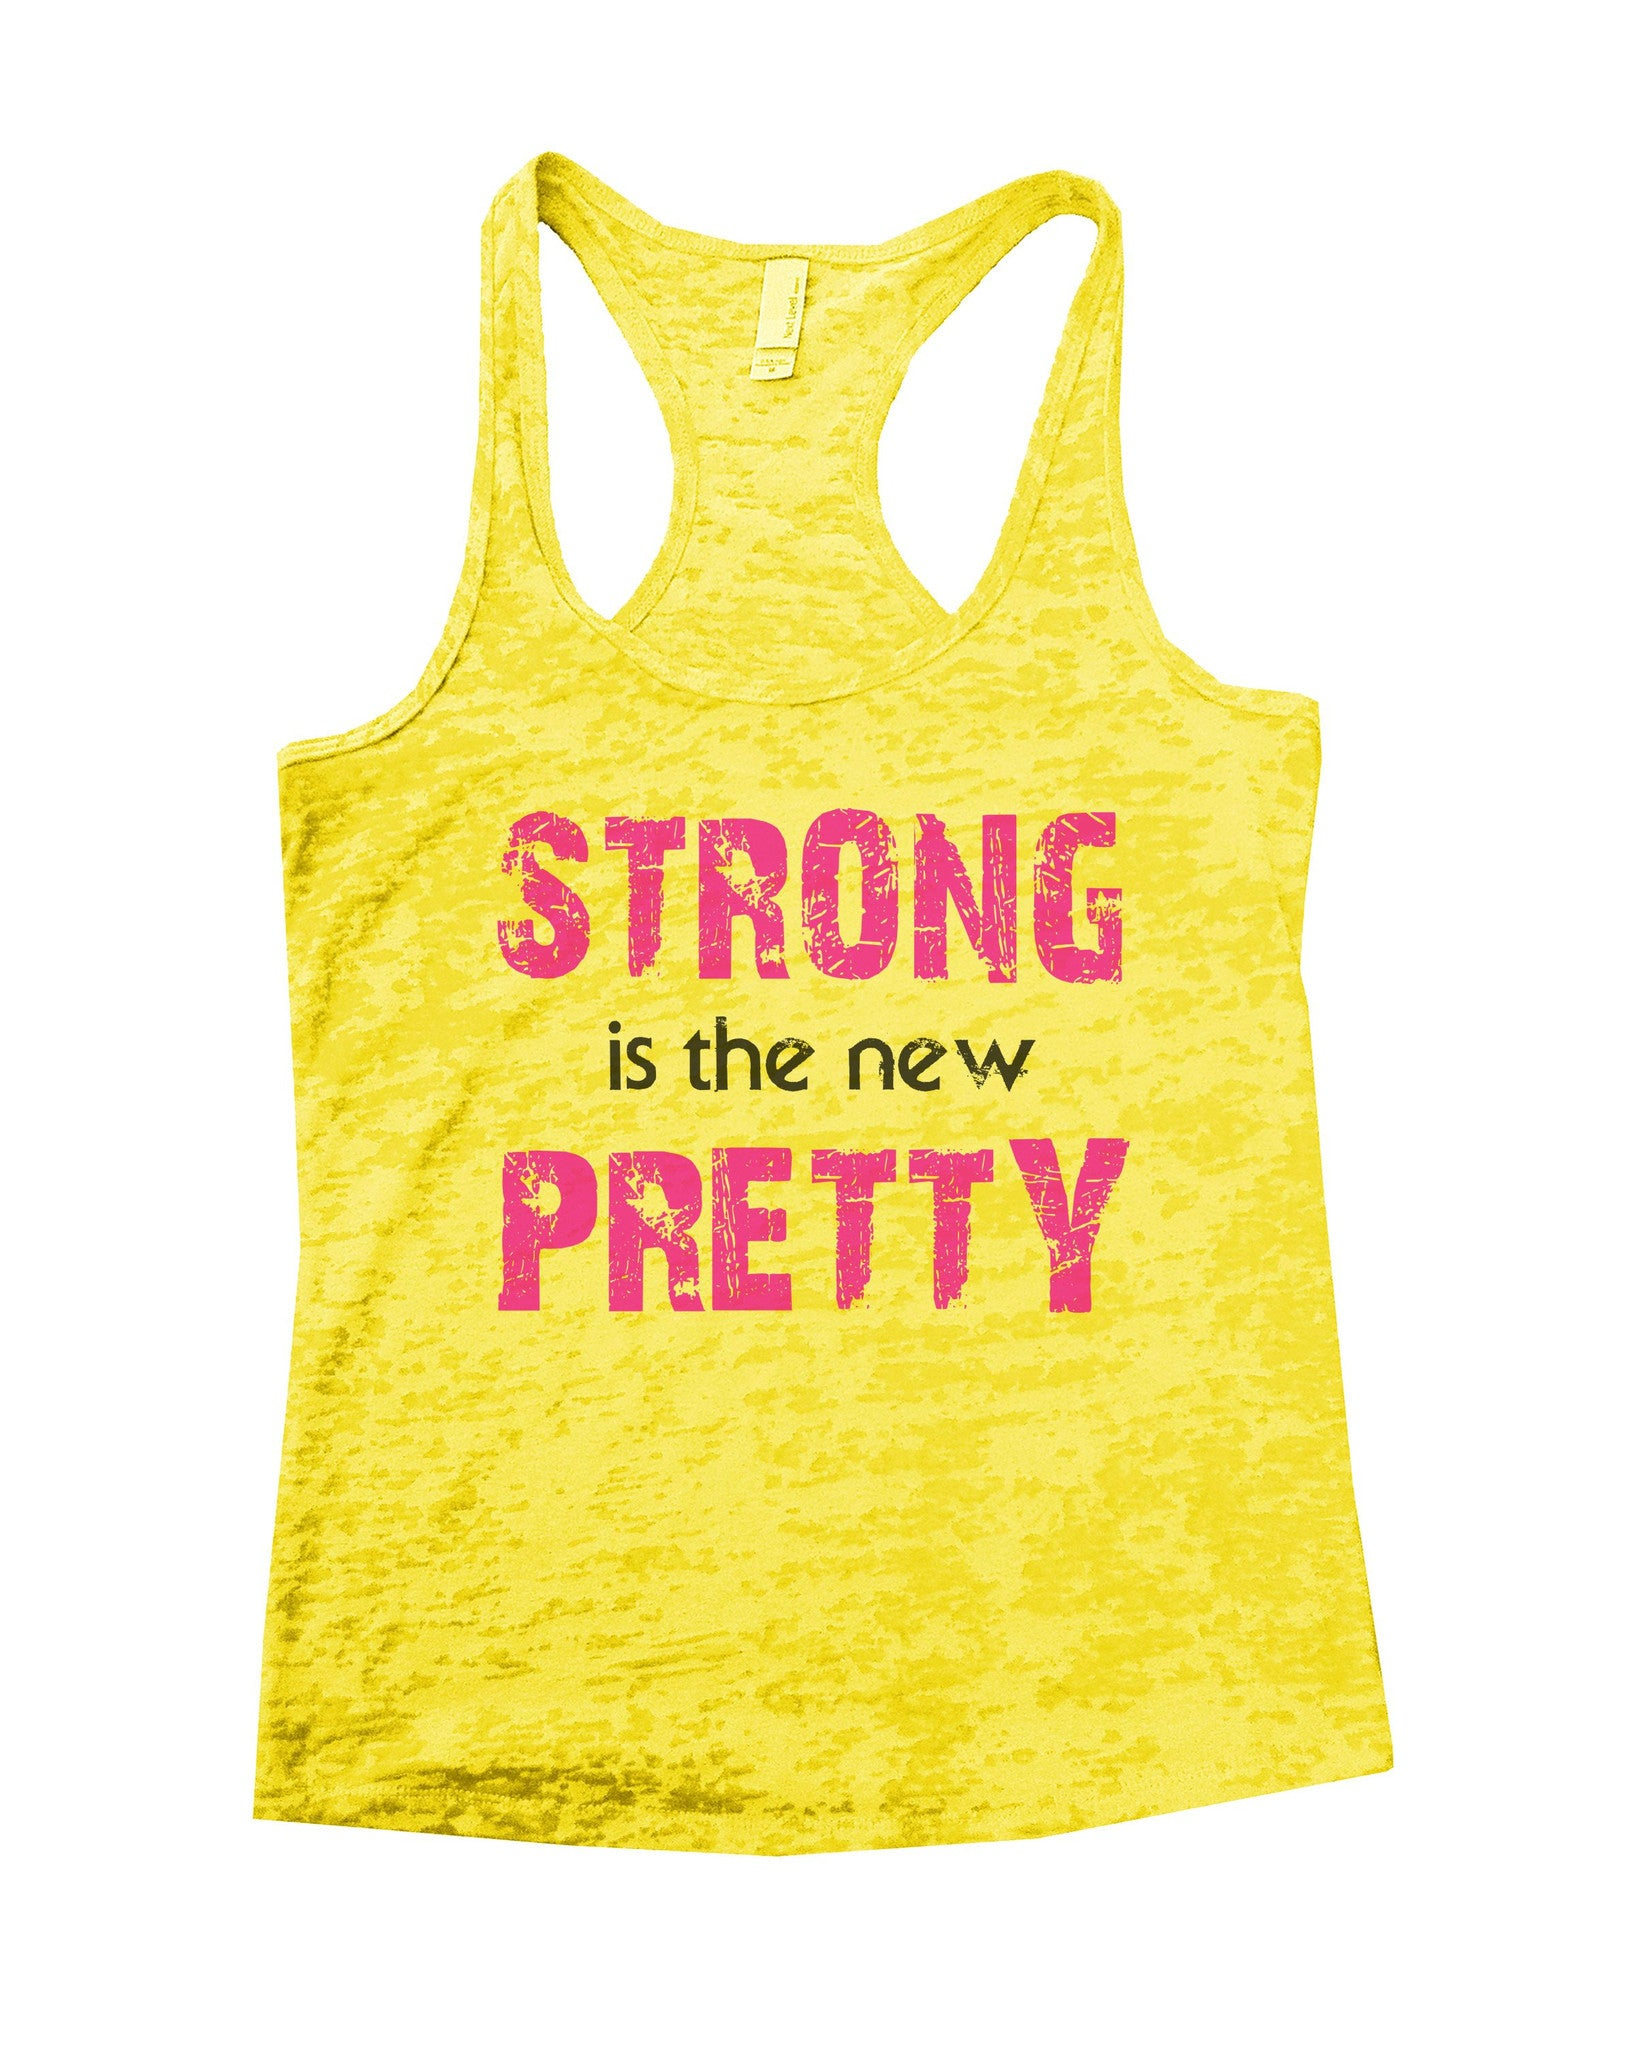 Strong Is The New Pretty Burnout Tank Top By BurnoutTankTops.com - 746 - Funny Shirts Tank Tops Burnouts and Triblends  - 6